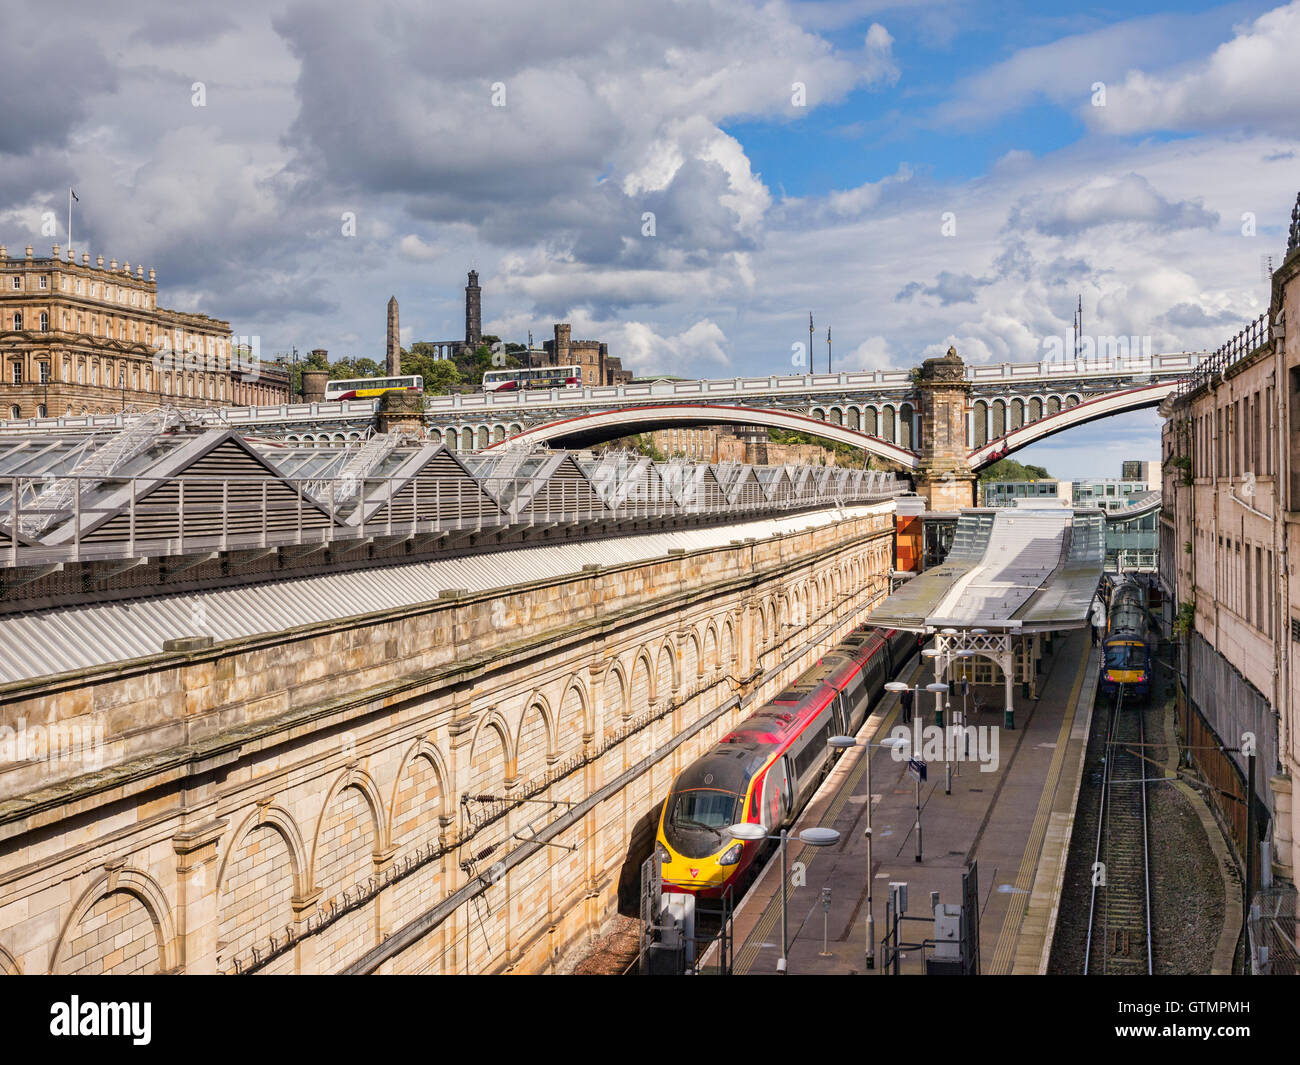 Virgin train in Waverley Street Station, Edinburgh, Scotland, UK, seen from above. - Stock Image